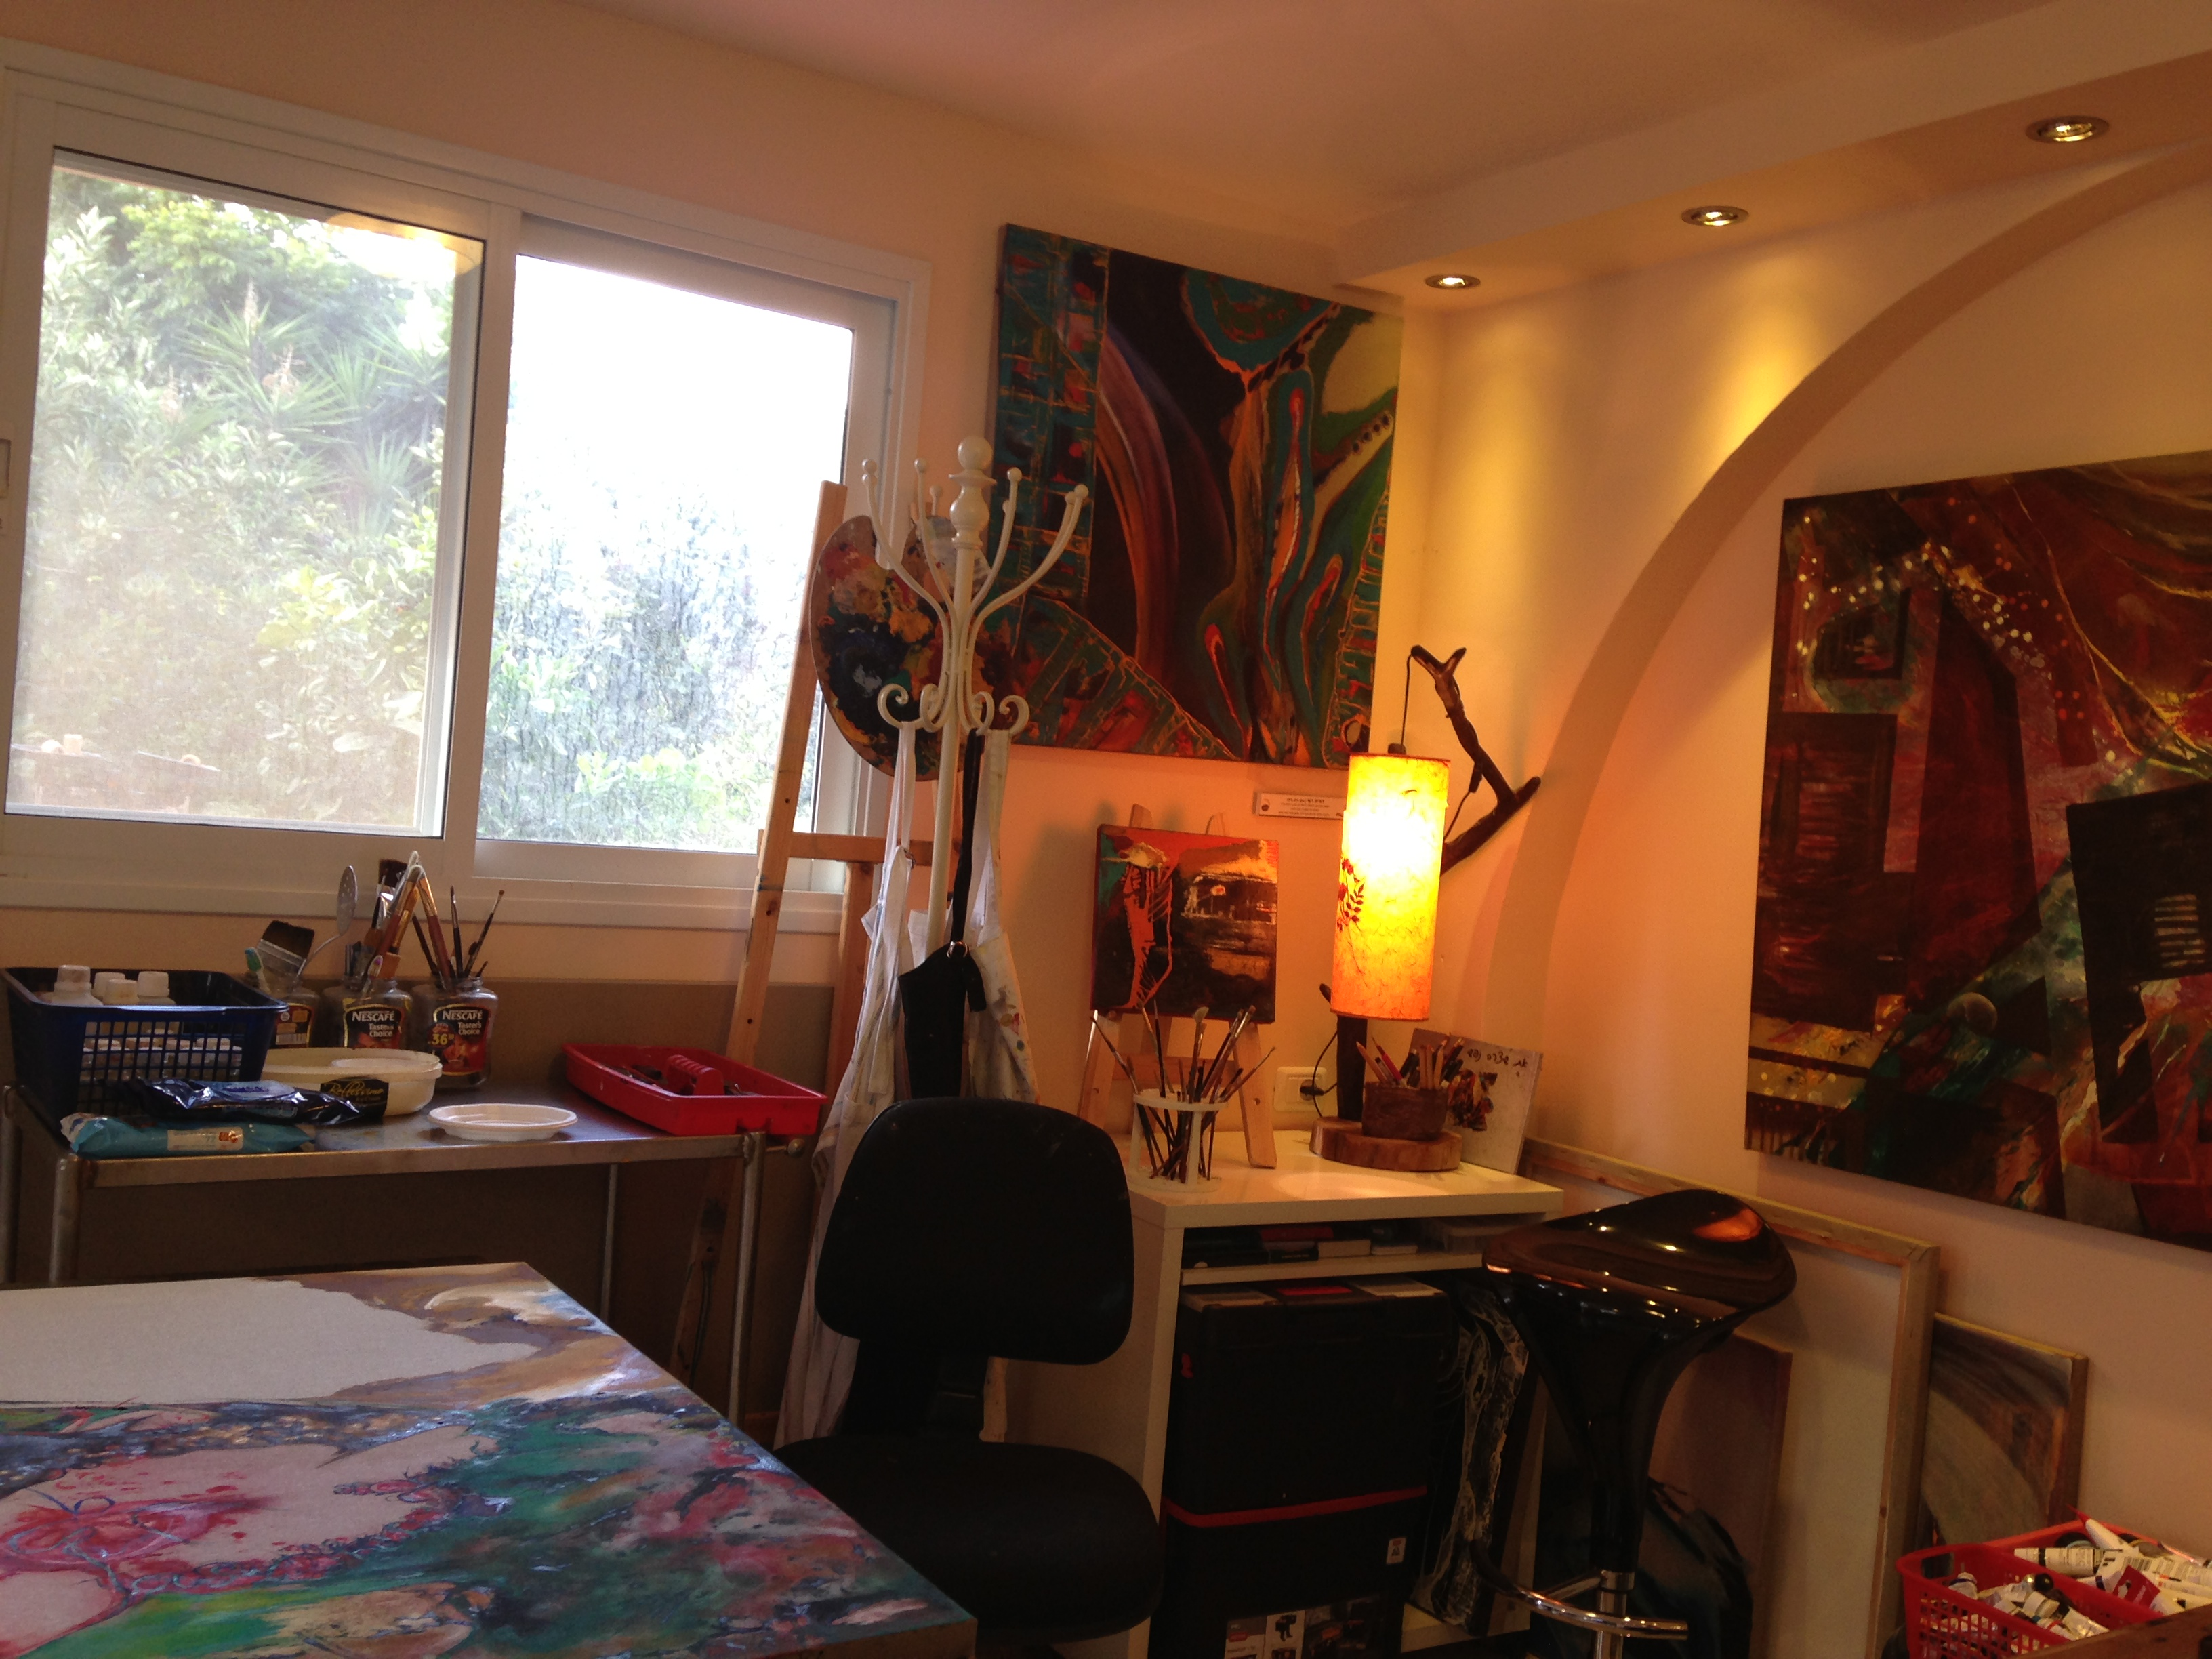 Studio work space